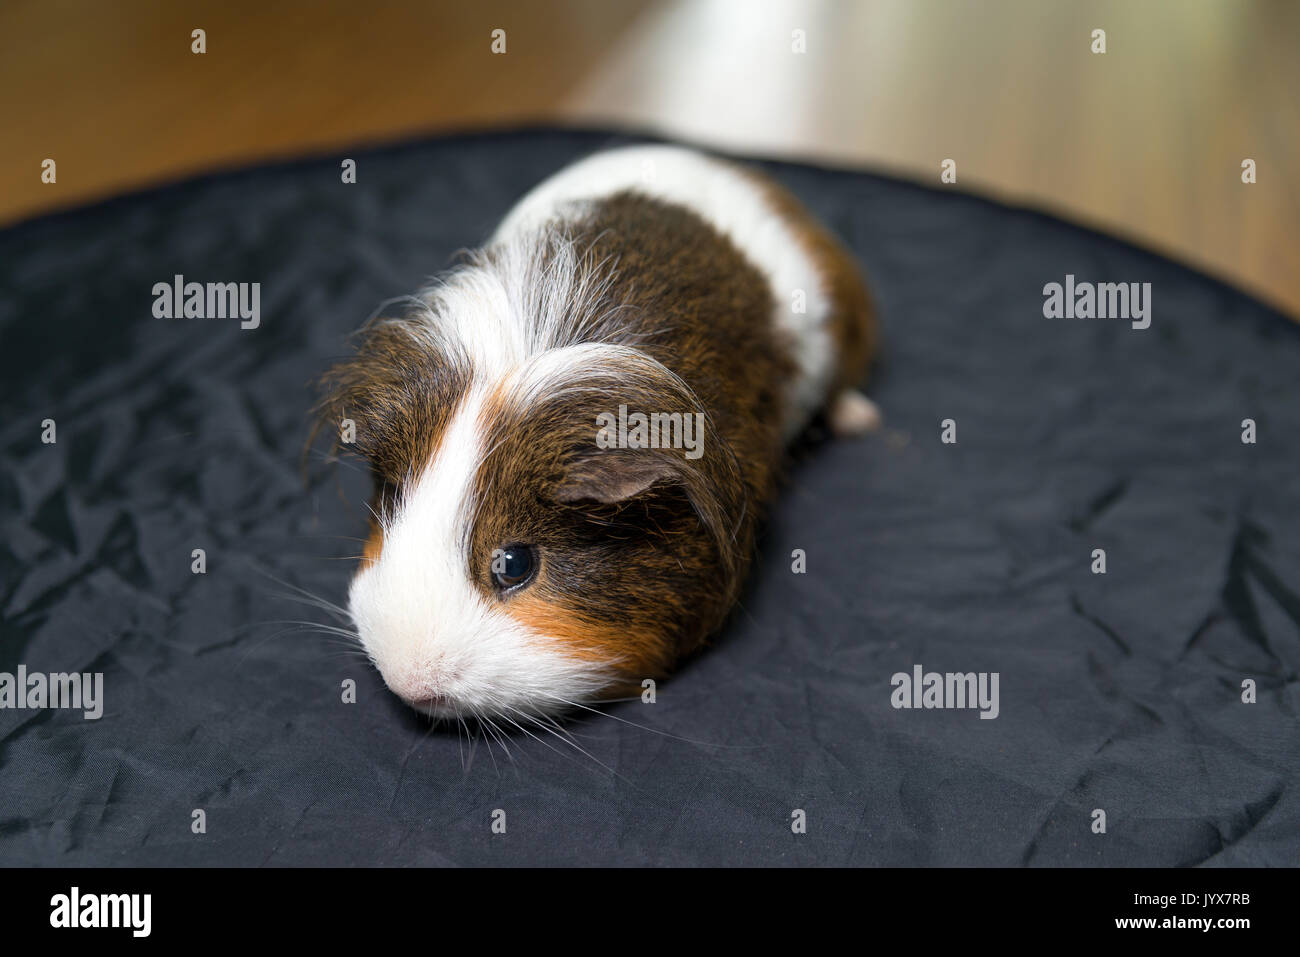 Animal Pig Black And White Imágenes De Stock & Animal Pig Black And ...